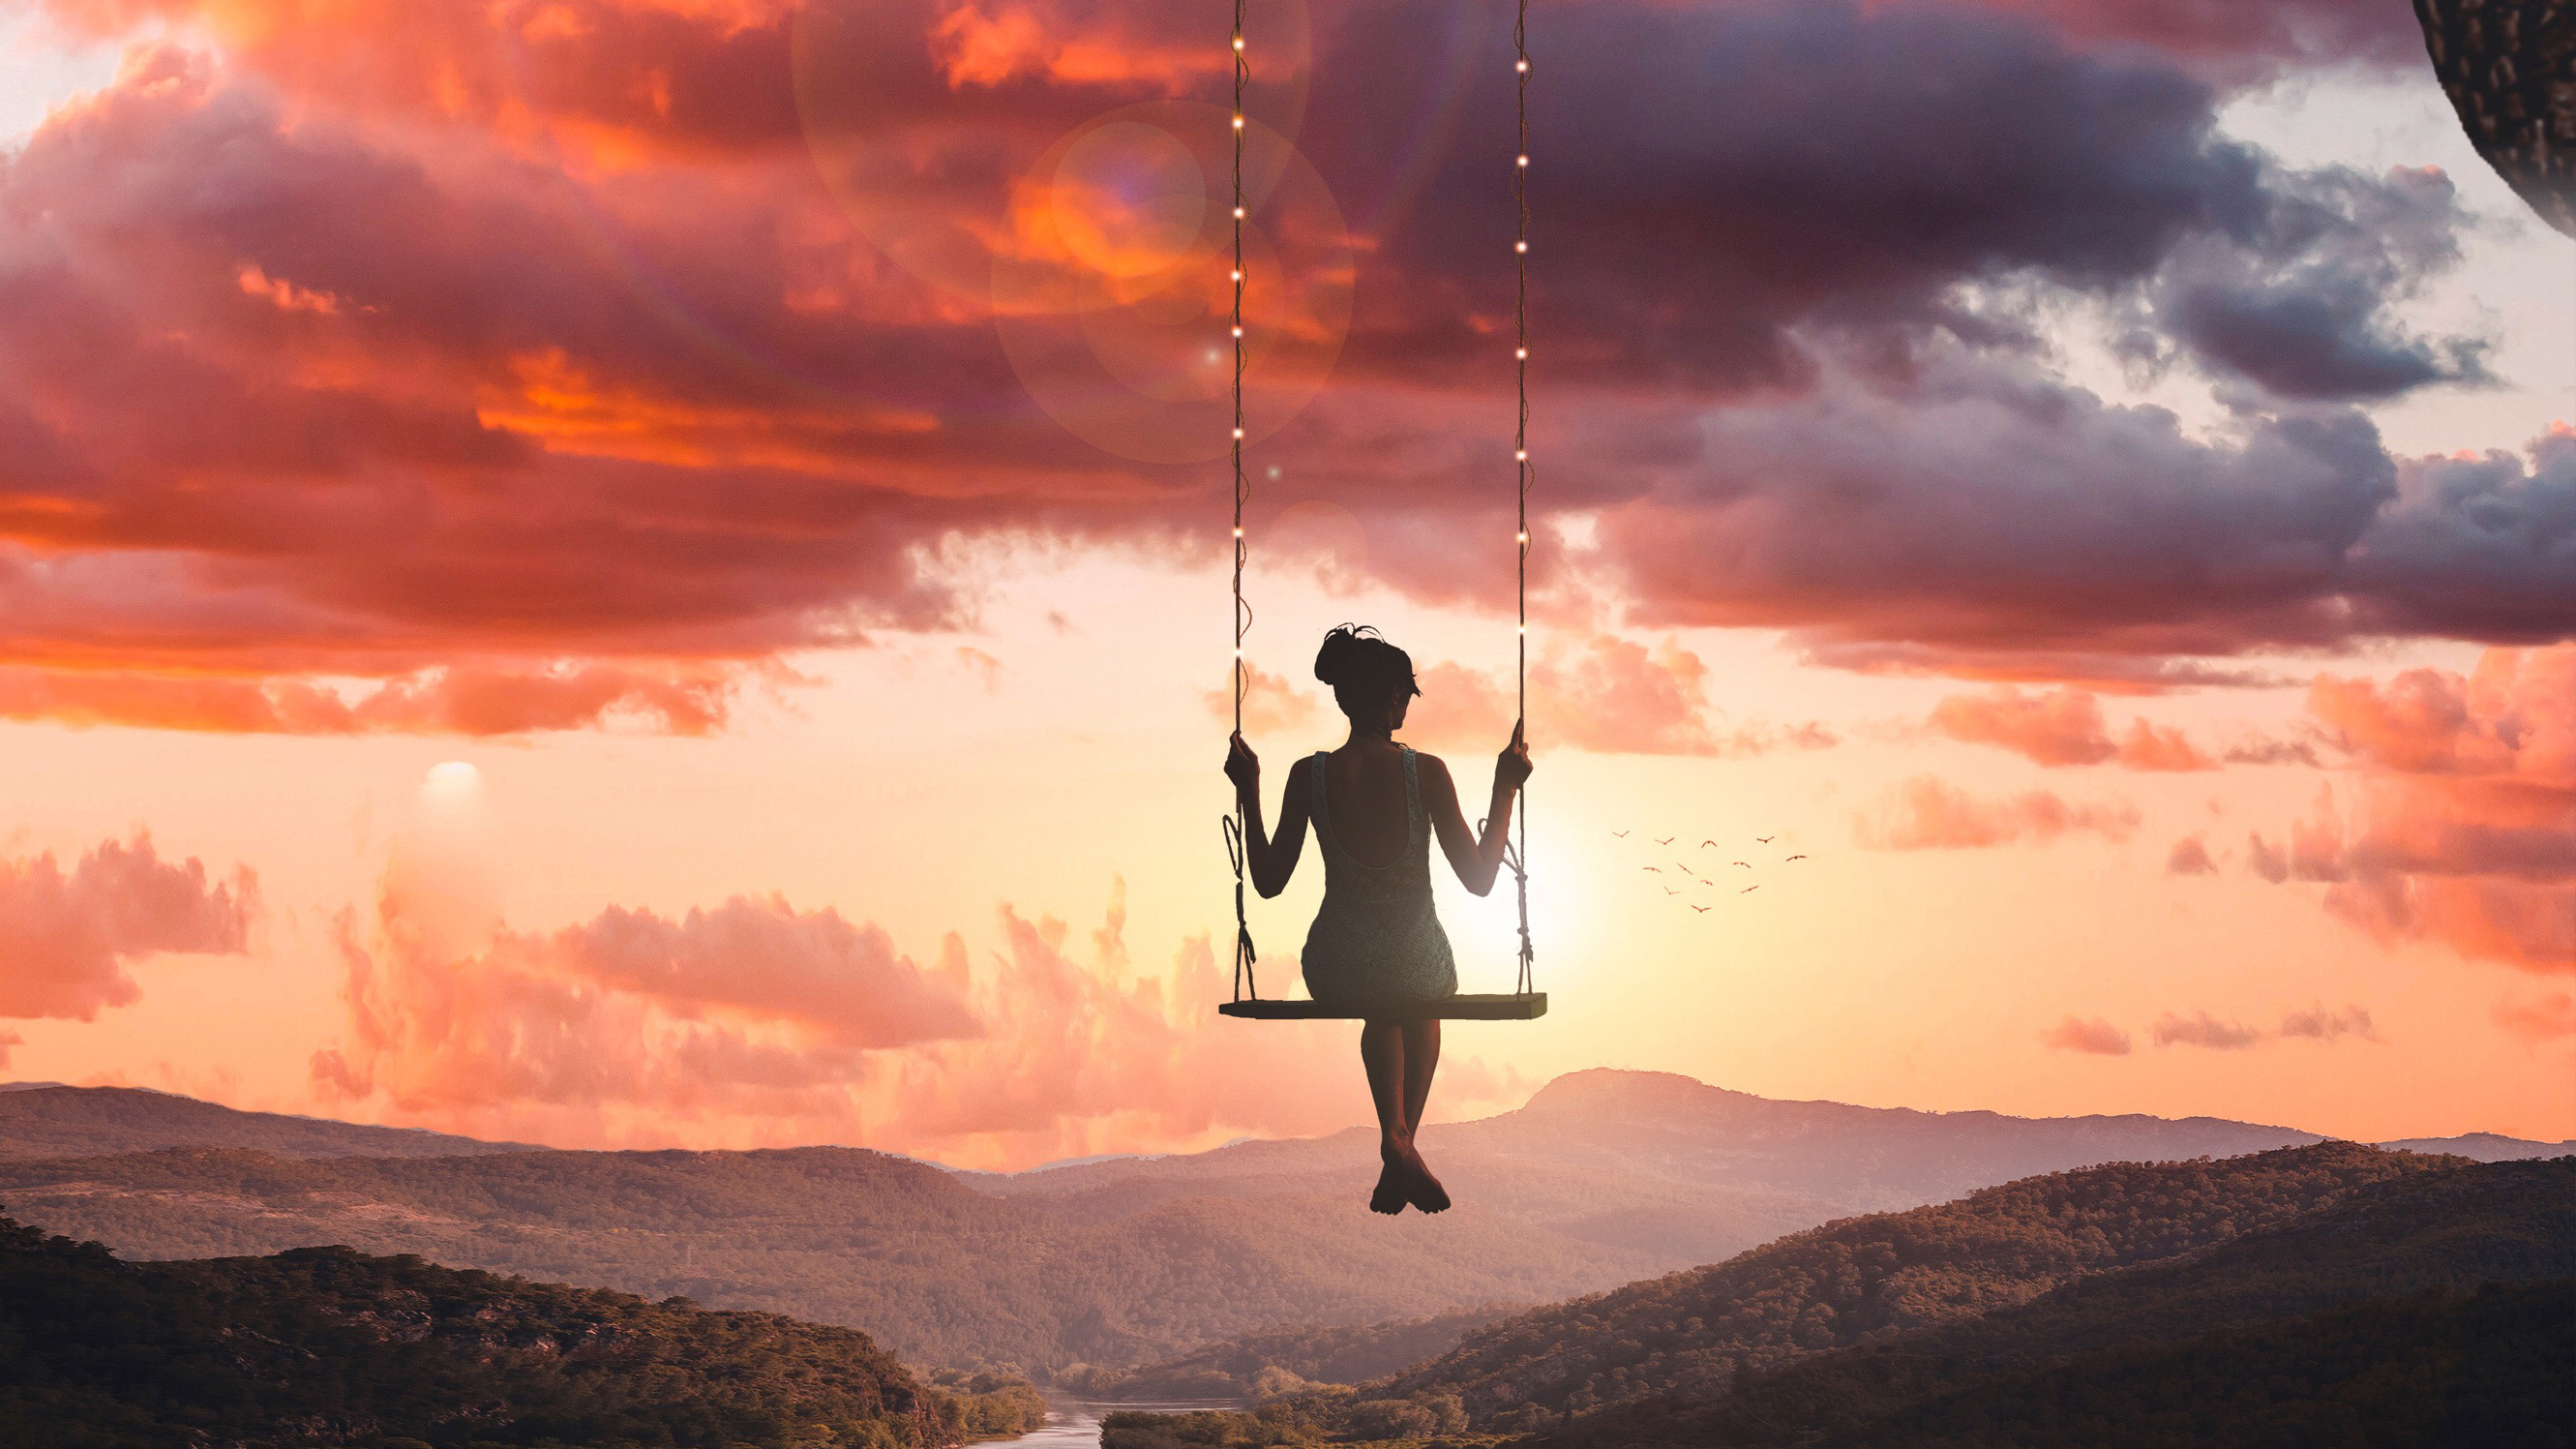 Girl swinging on top of world hd photography 4k wallpapers images backgrounds photos and - On top of the world wallpaper ...